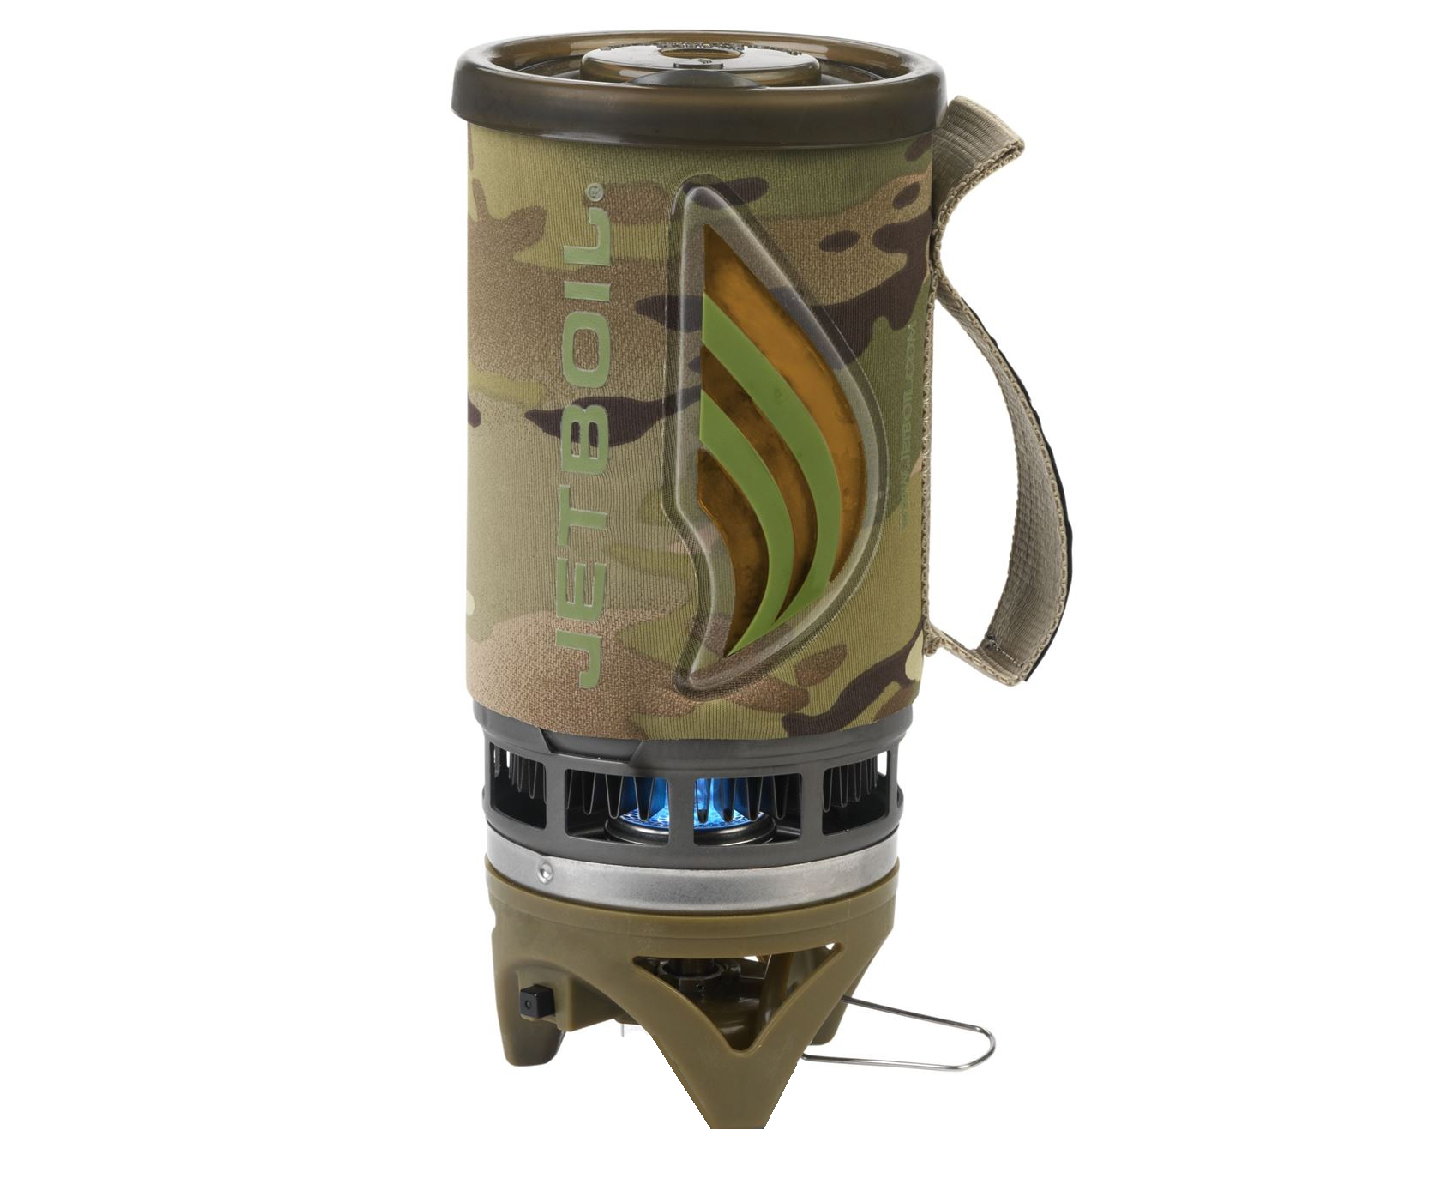 Jetboil Flash personal cooking system (Camo)